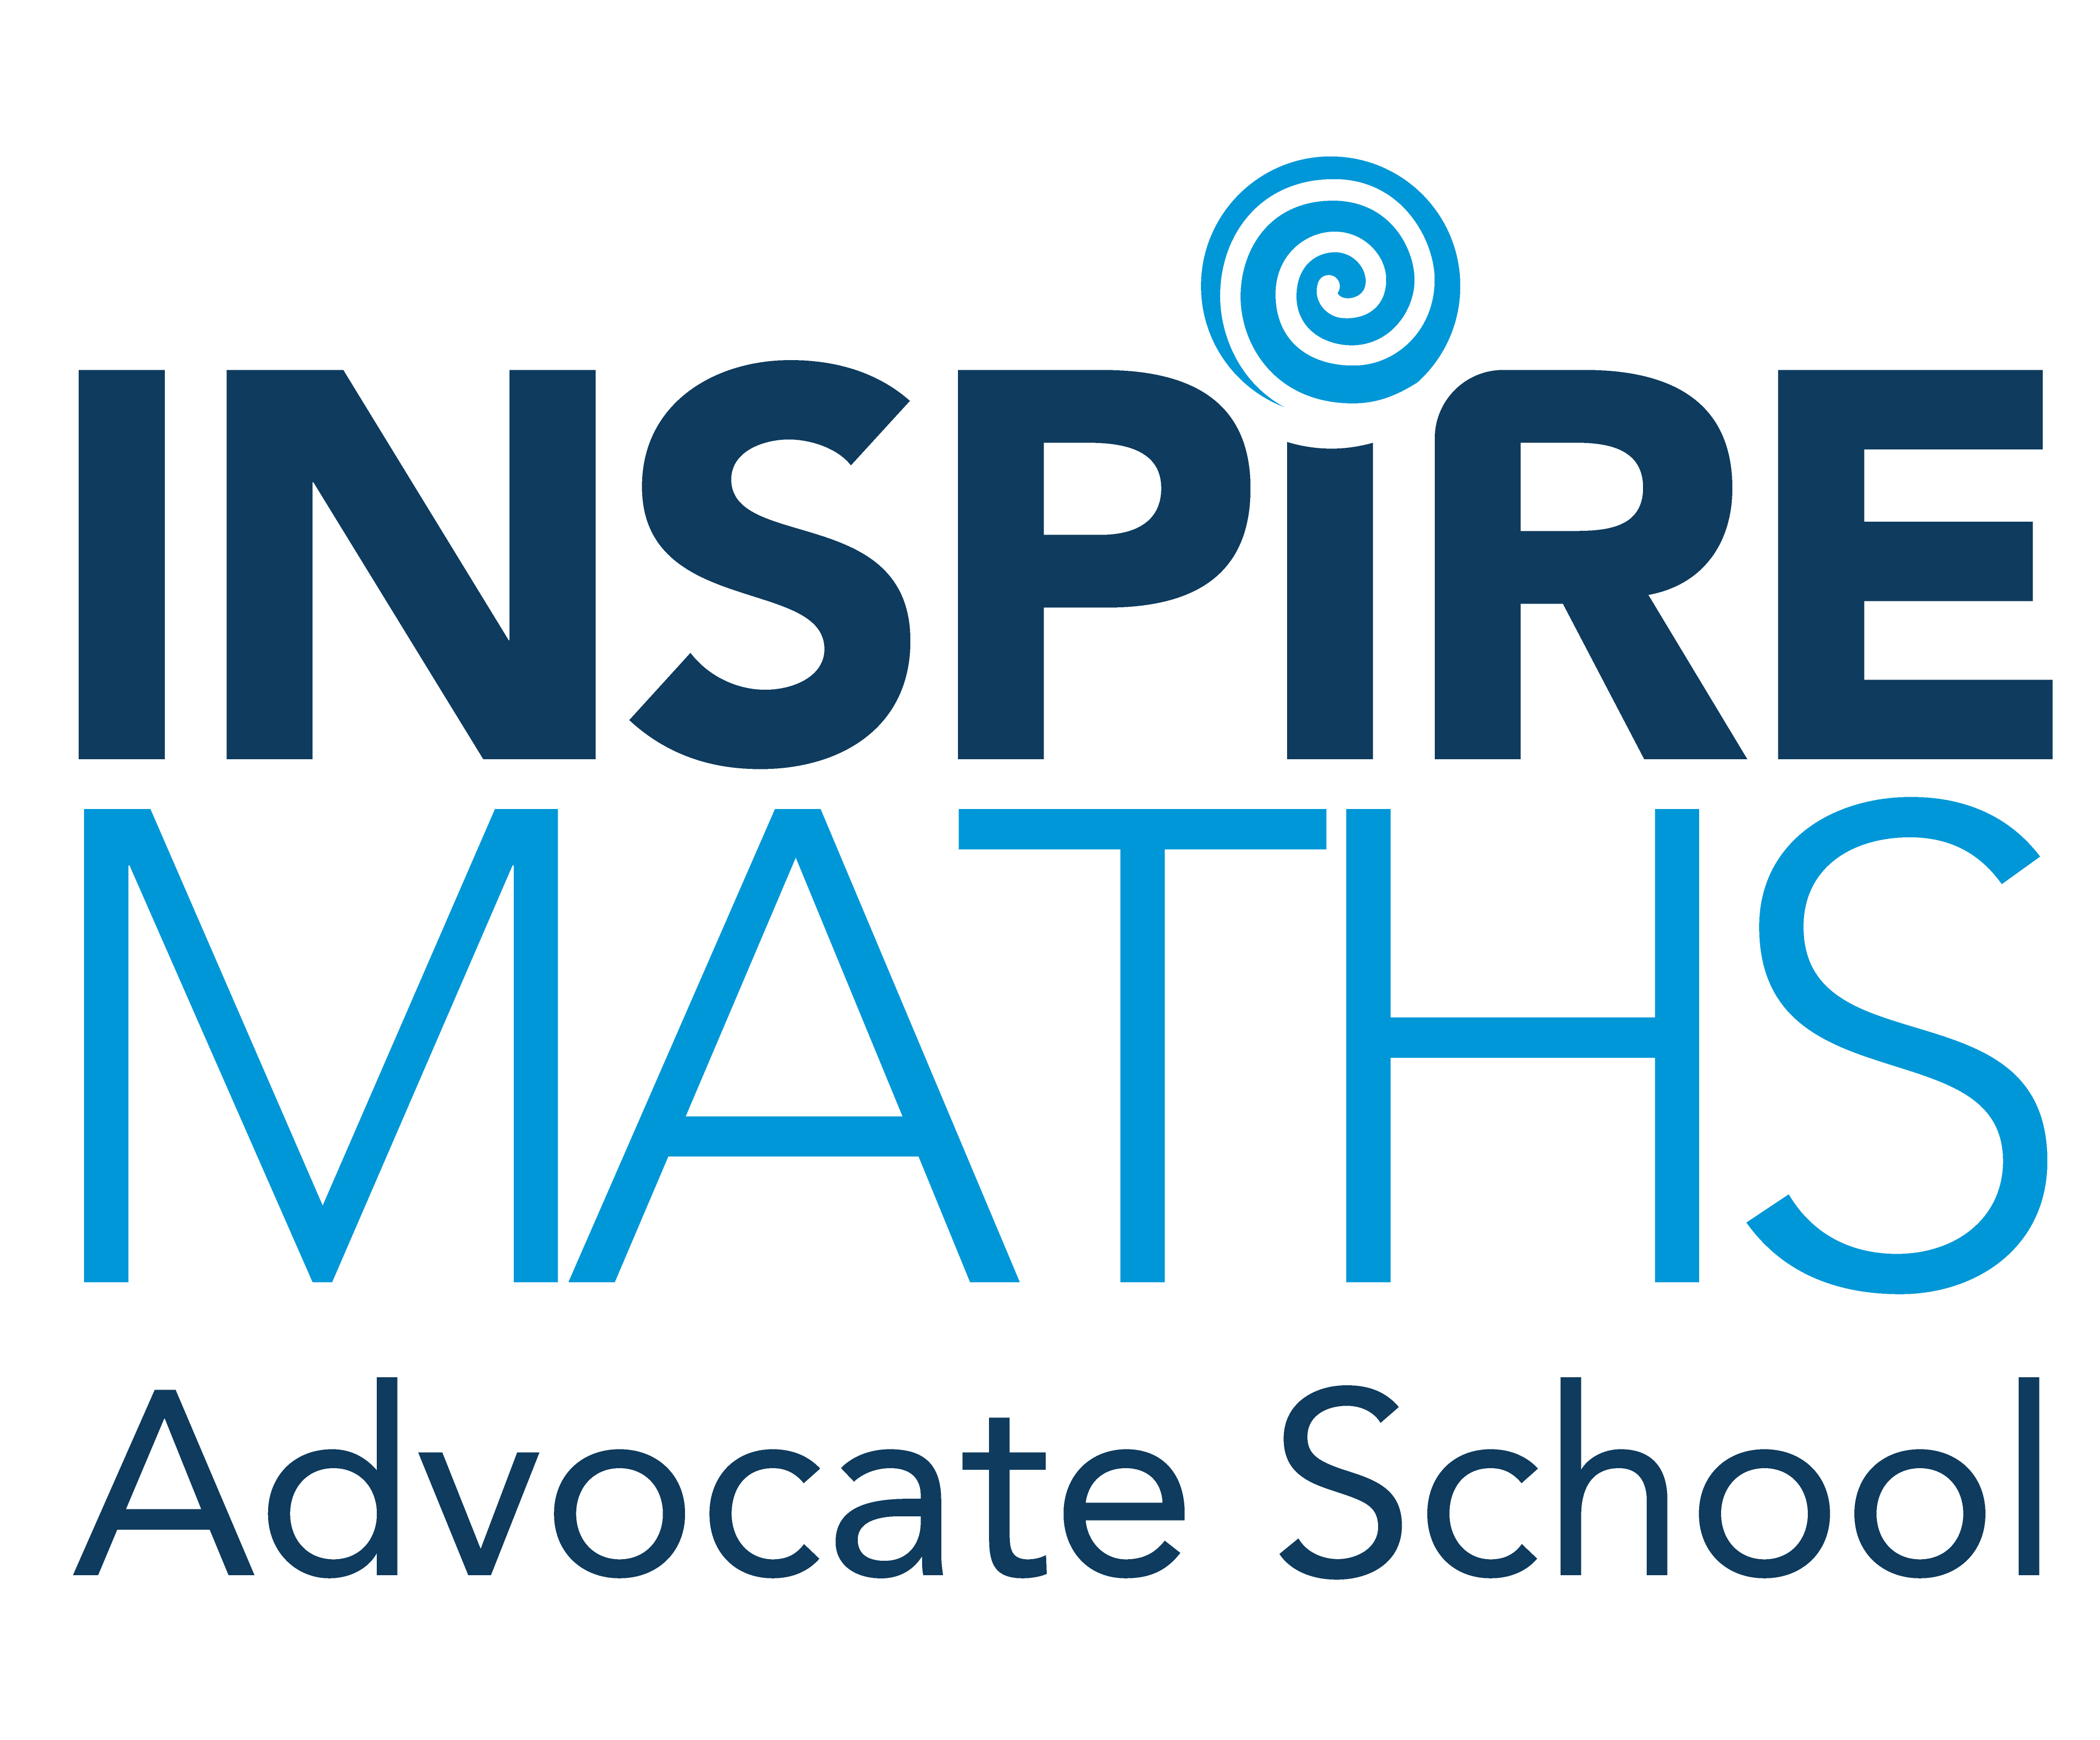 INSPIRE MATHS AdvocateSchool LOGO